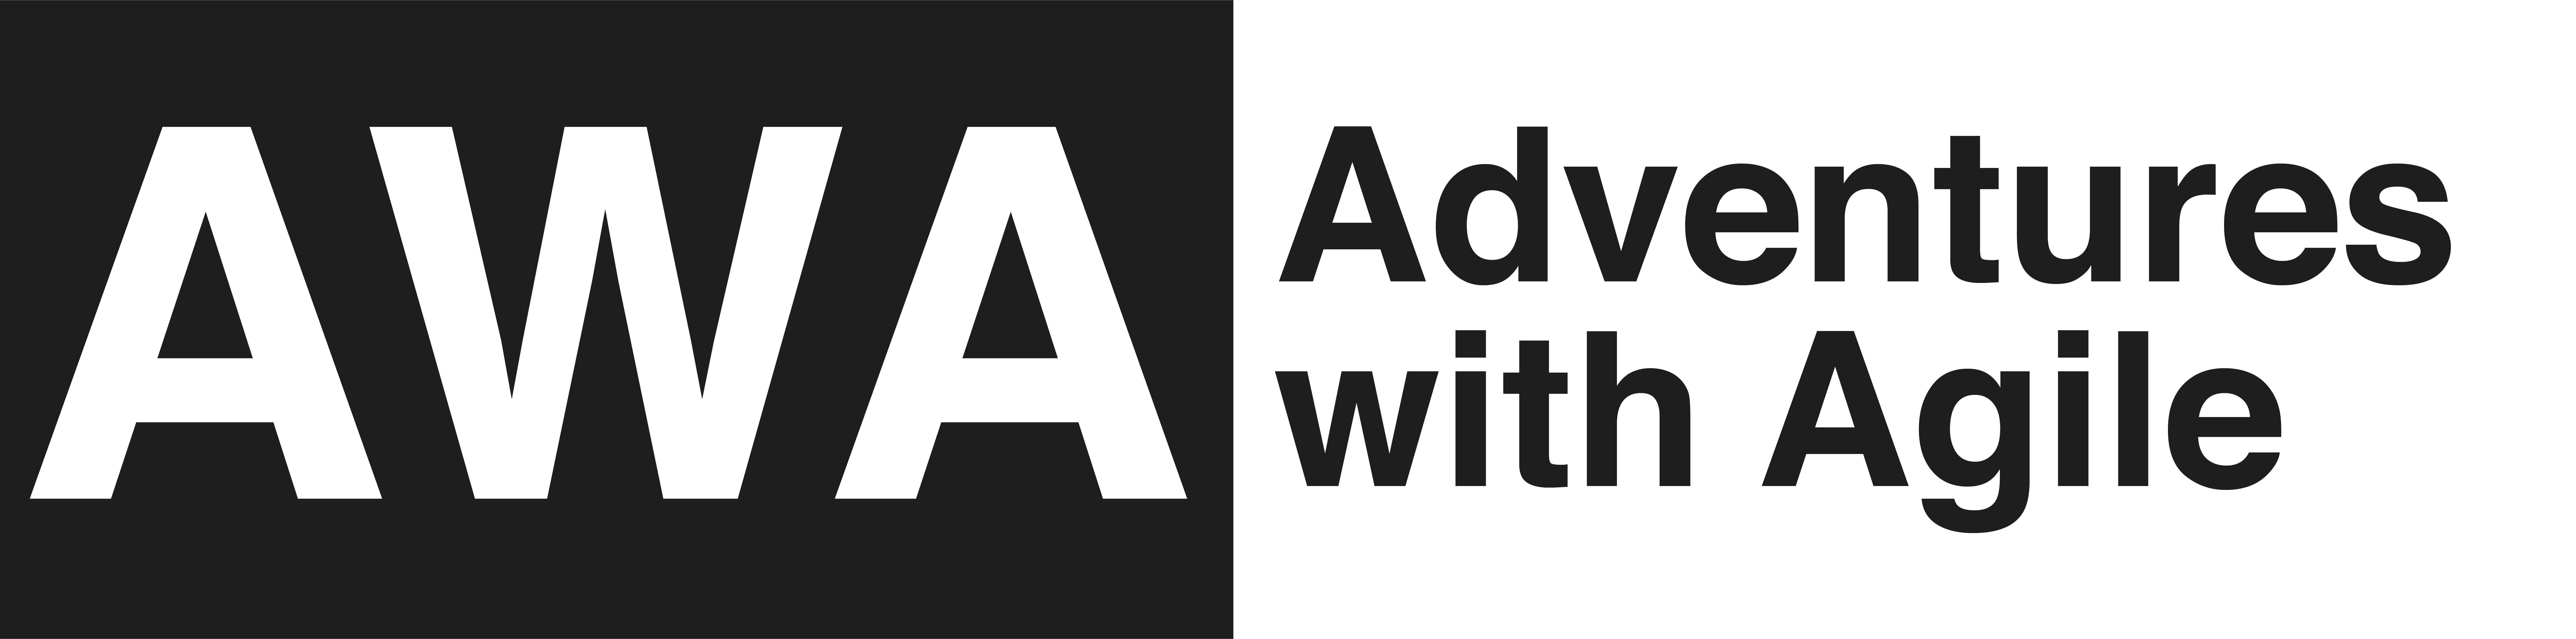 Adventures with Agile